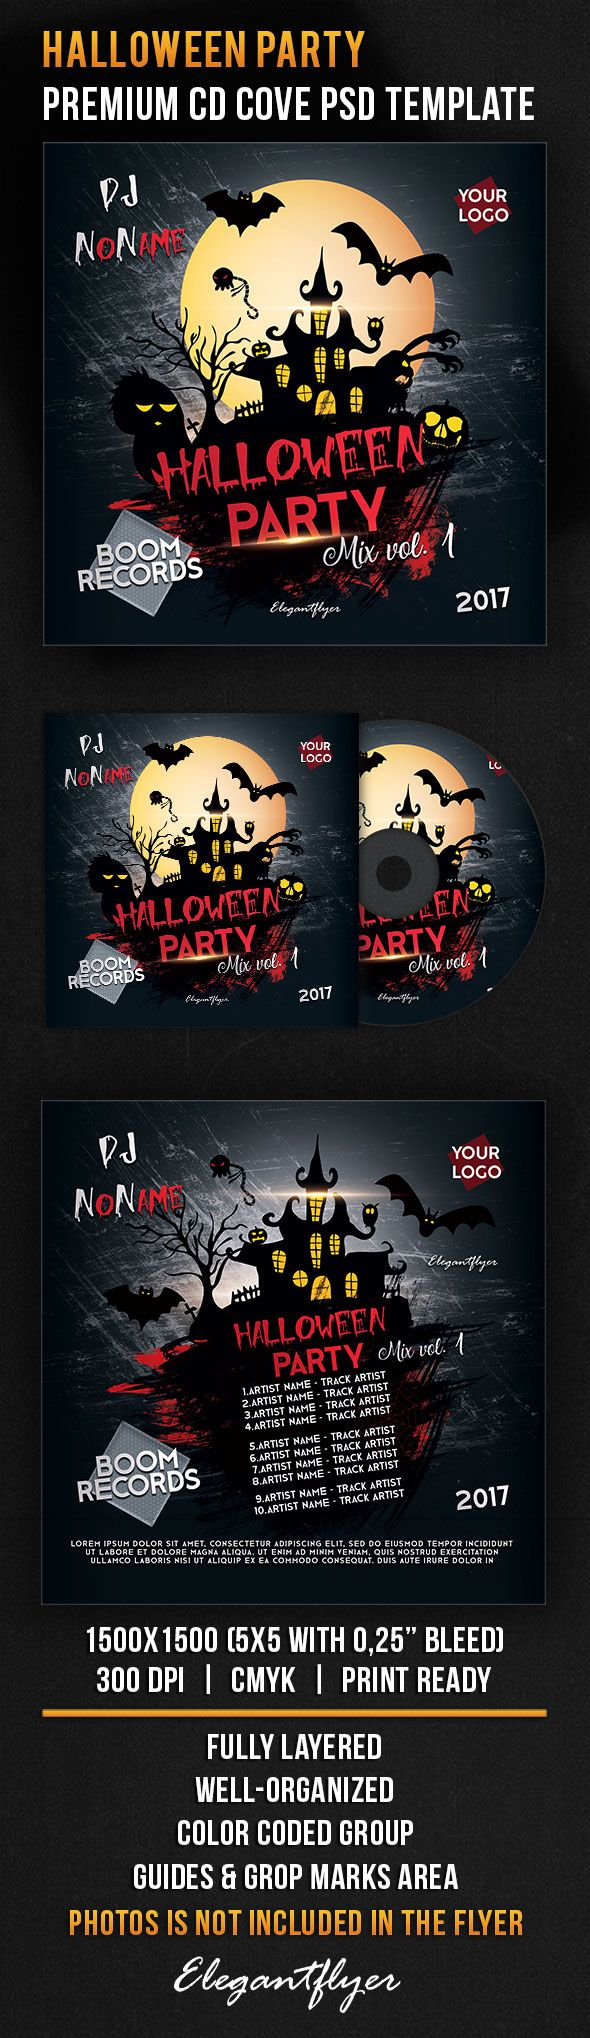 Halloween Party – Premium CD Cover PSD Template